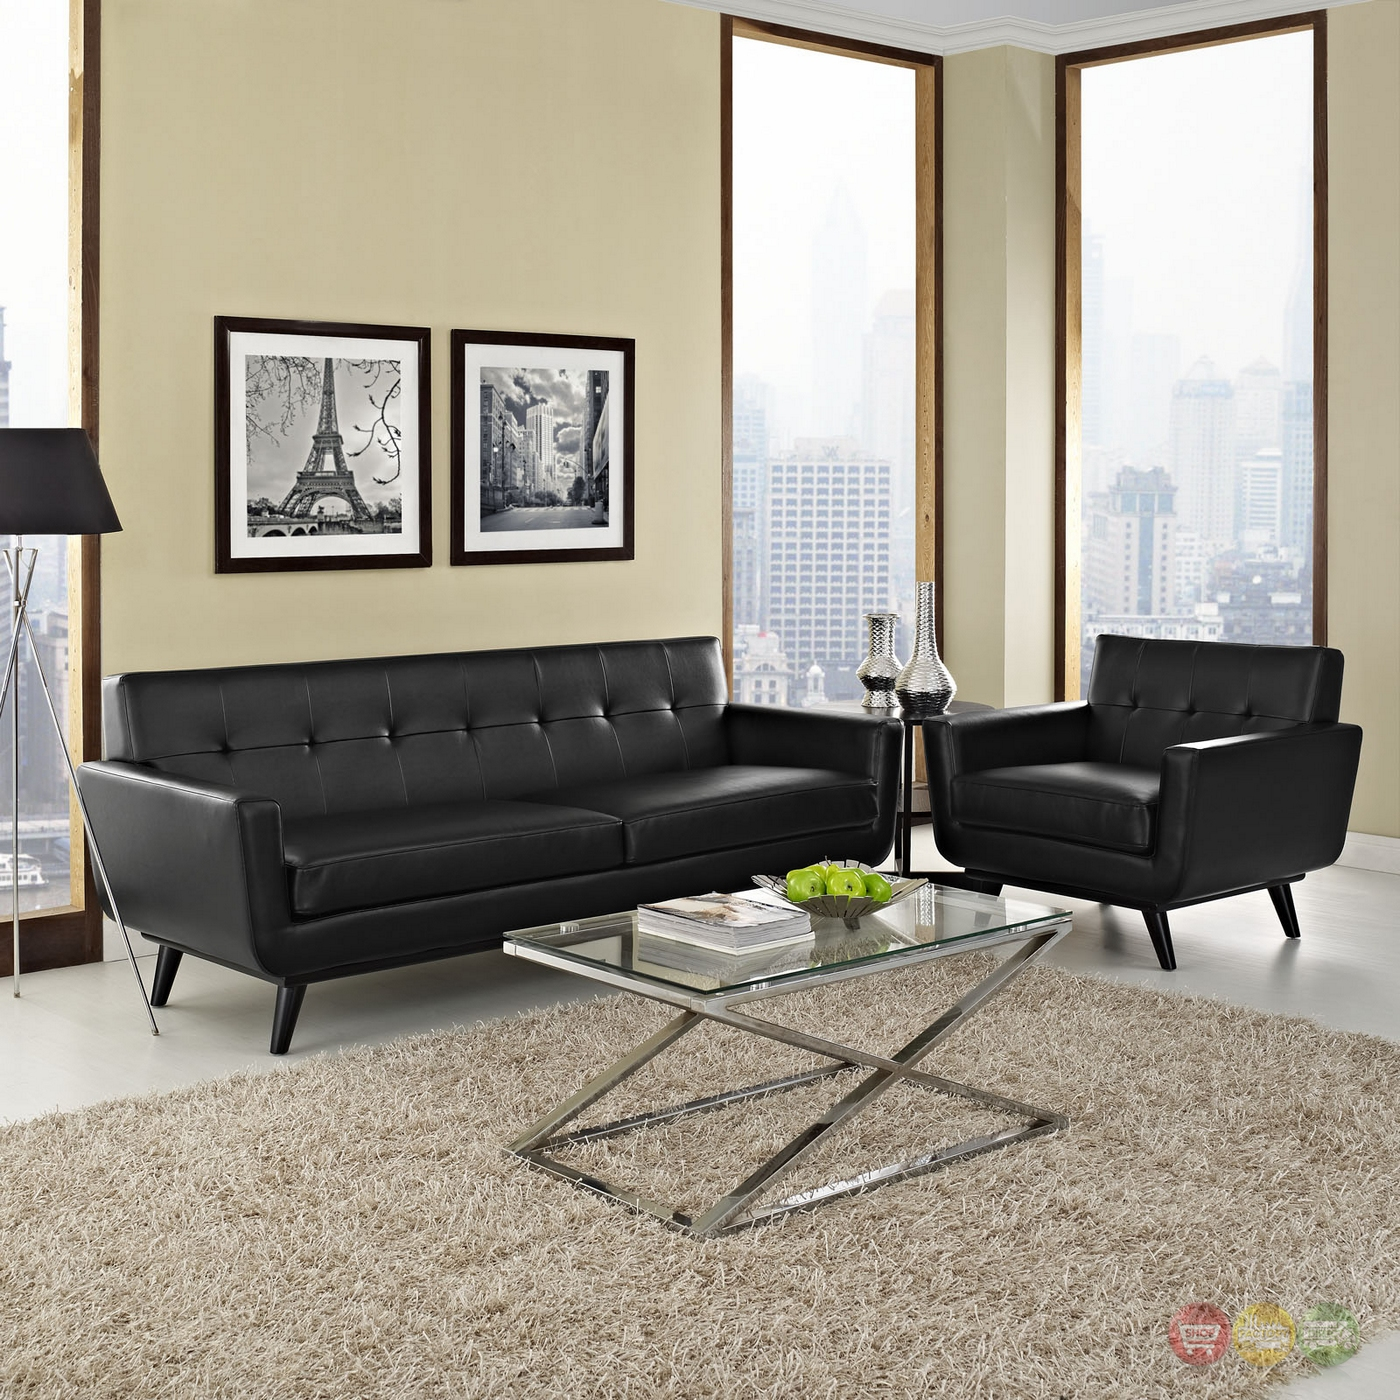 Mid Century Modern Living Room Furniture: Engage Contemporary 2pc Button-tufted Leather Living Room